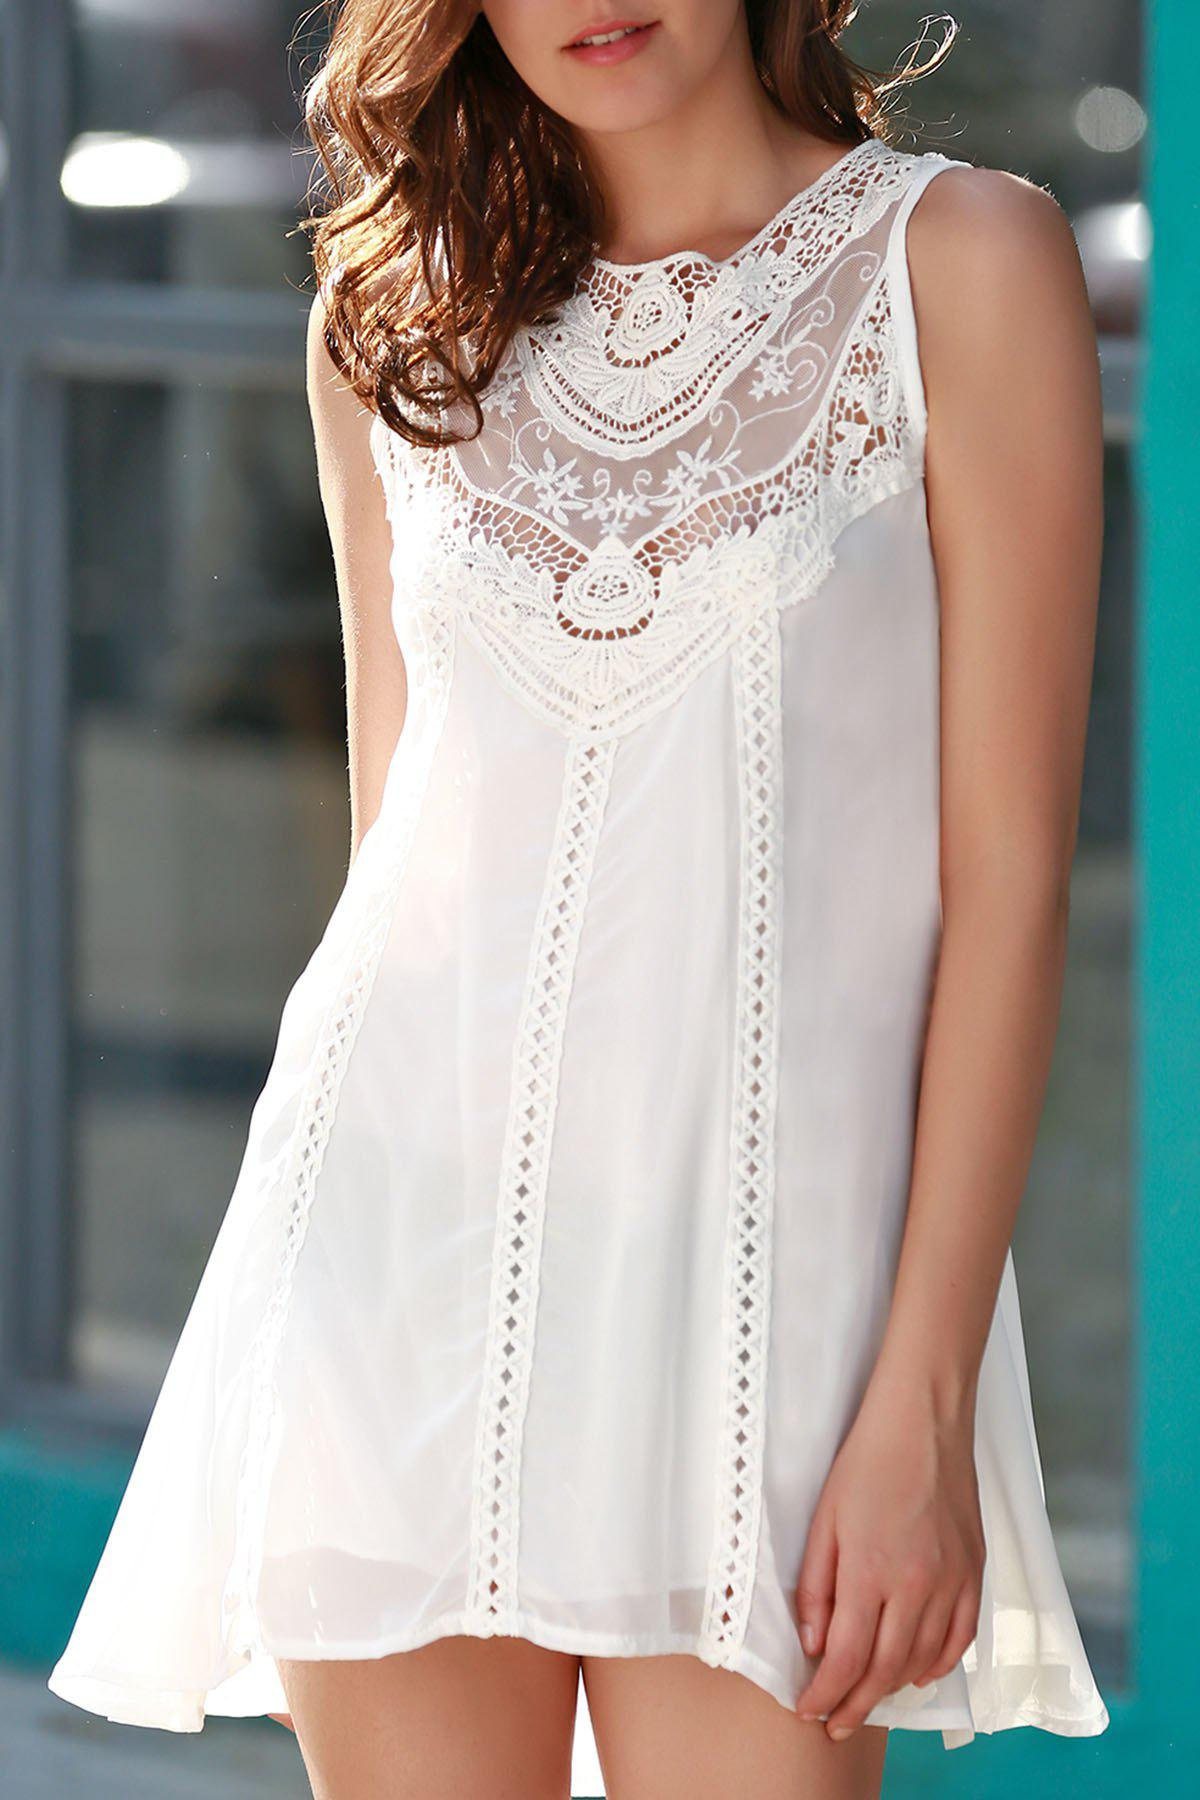 Stylish Jewel Neck Sleeveless Spliced Openwork White Women's Chiffon Dress - WHITE L